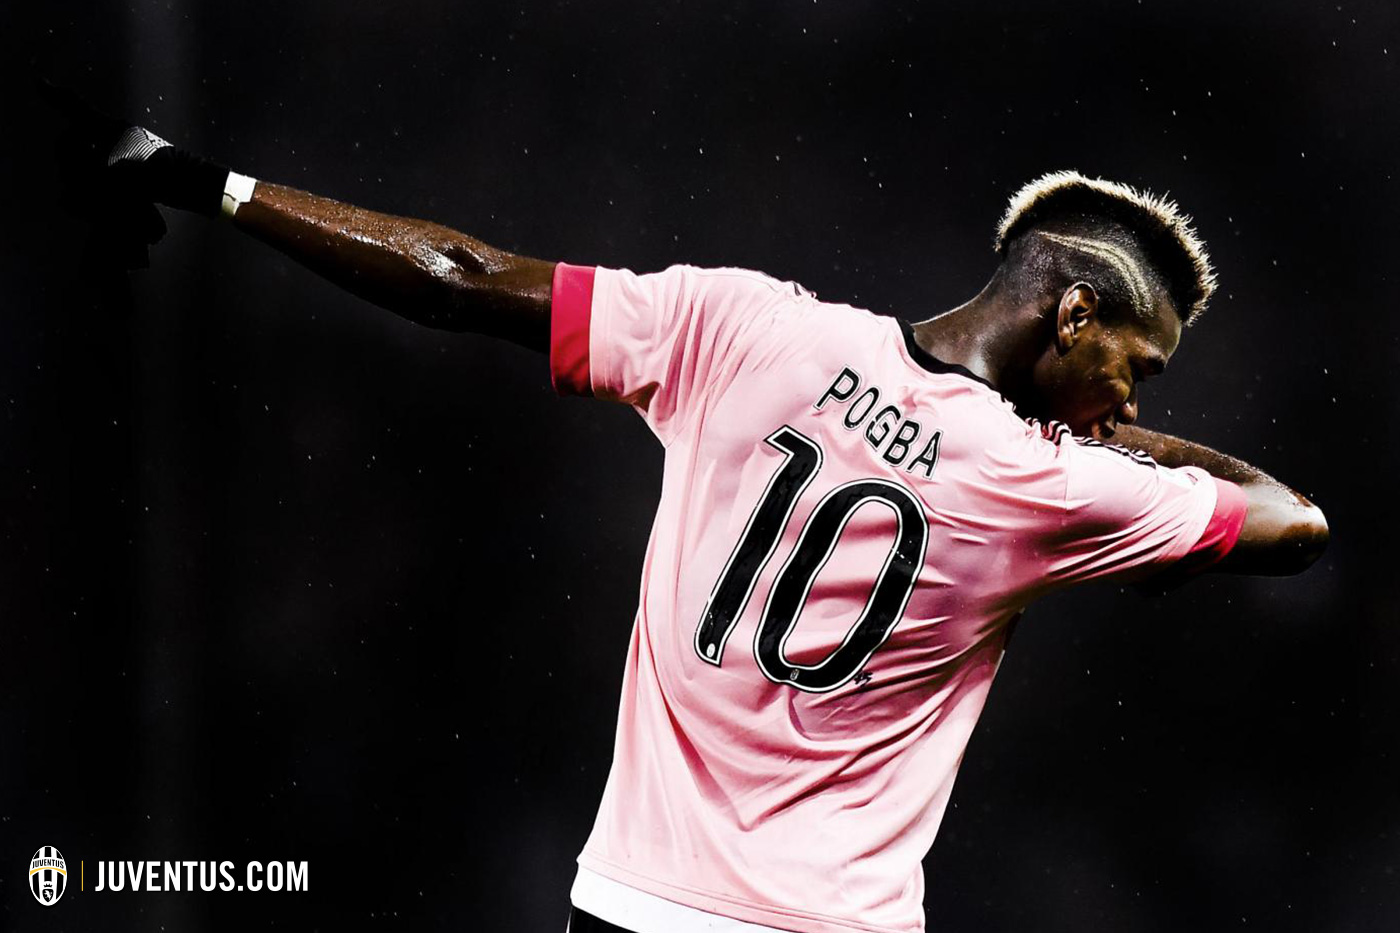 Pogba Dab Wallpaper Wallpapersafari